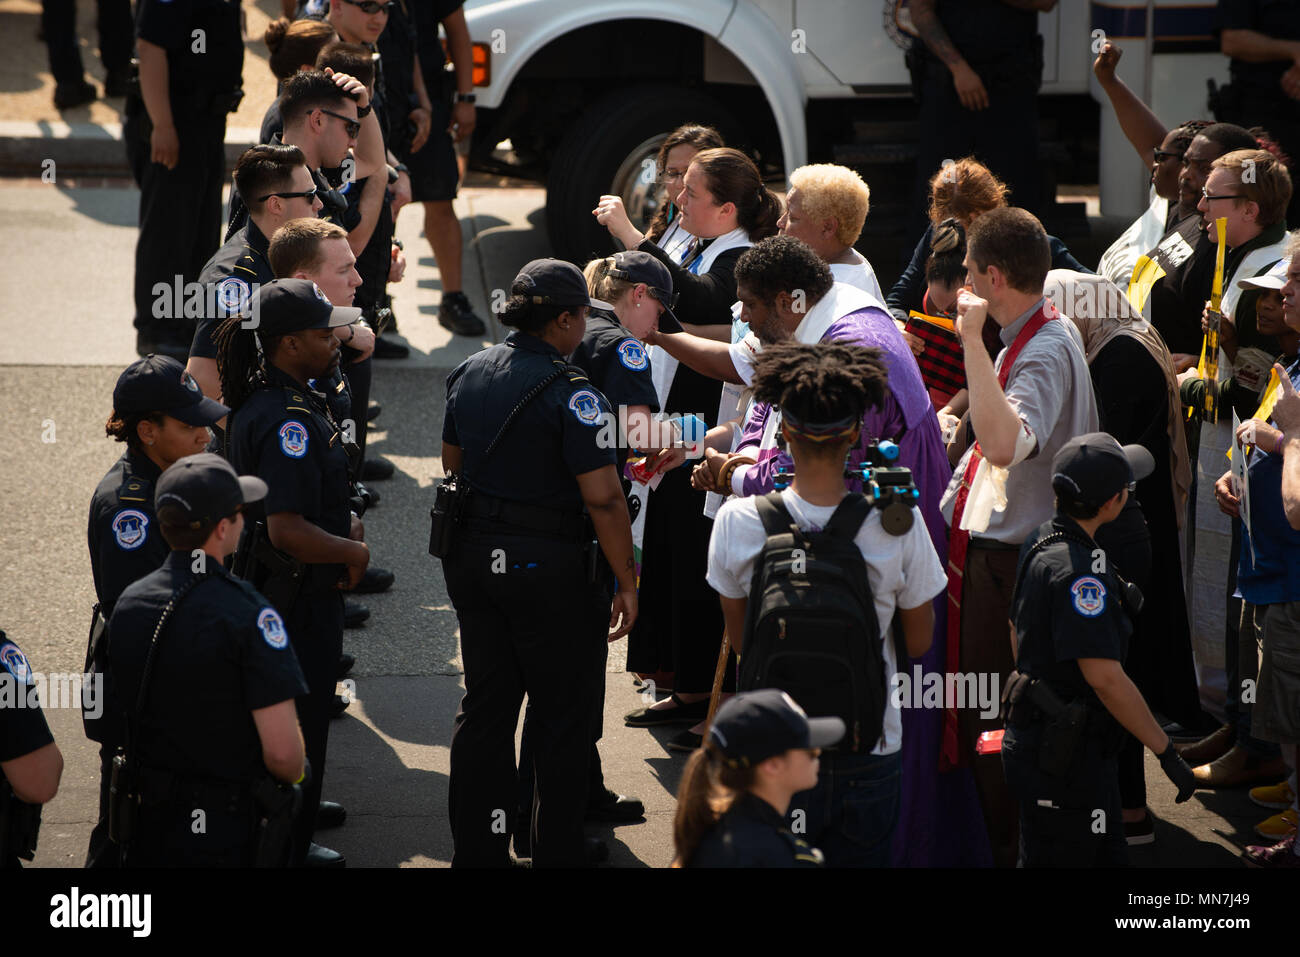 Washington, DC, USA. 14th May, 2018. THE REV. WILLIAM BARBER (in purple) and THE REV. LIZ THEOHARIS are among the first to be arrested at a rally and march launching a new Poor People's Campaign at the U.S. Capitol in Washington, DC. The campaign, modeled after a similarly named campaign by the Rev. Dr. Martin Luther King 50 years earlier, began with rallies in about three dozen states, and is planned to last six weeks. Approximately 200 people were arrested in the various rallies, often being cited for blocking traffic. Credit: Jay Mallin/ZUMA Wire/Alamy Live News Stock Photo